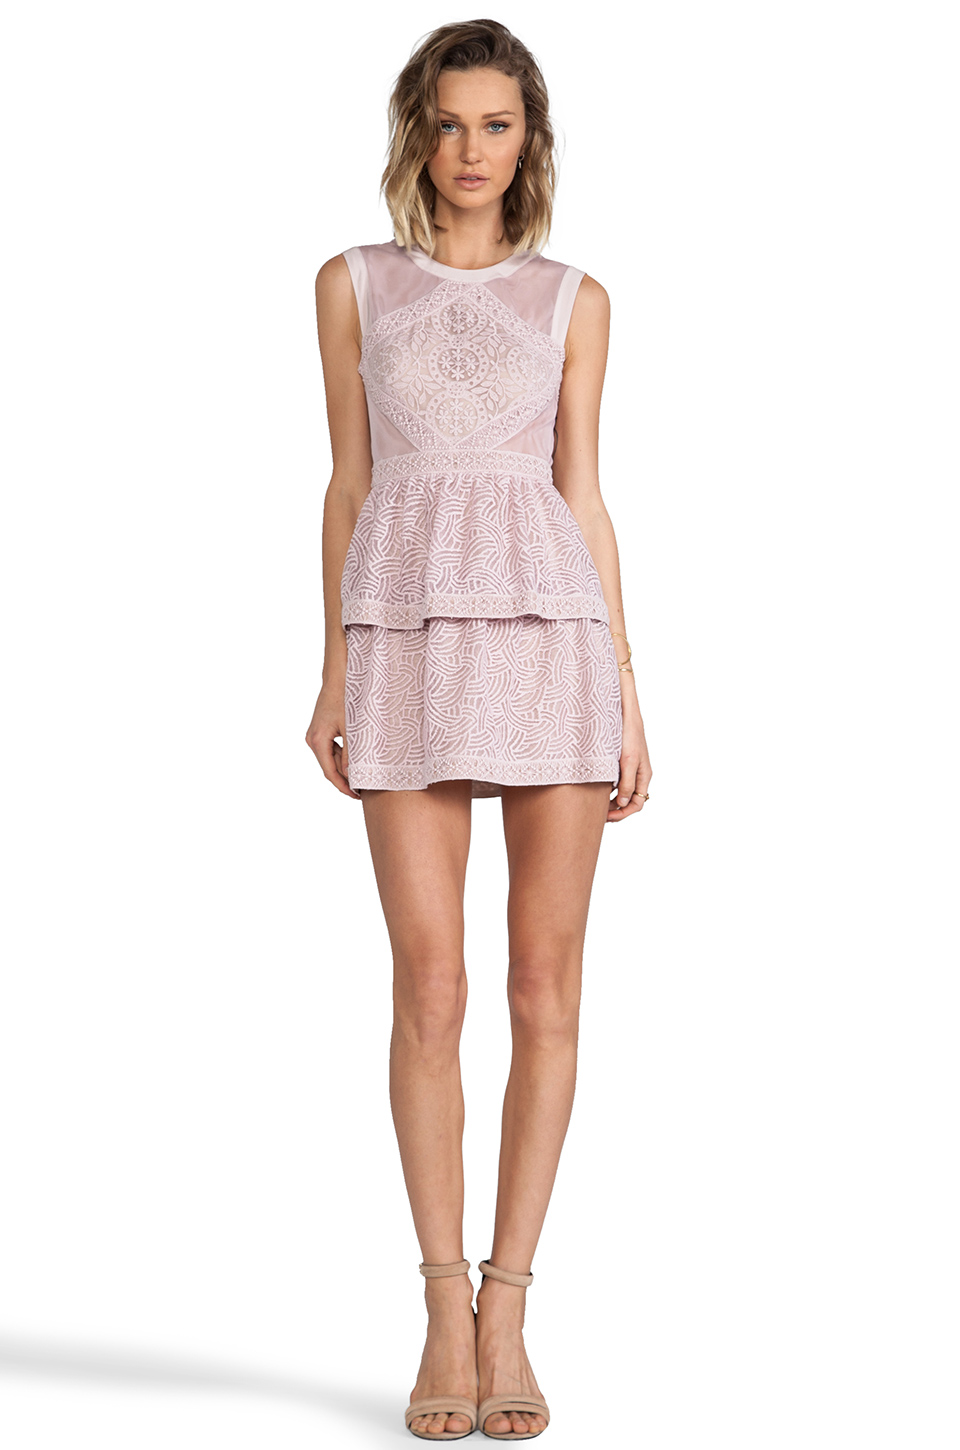 BCBGMAXAZRIA Joselyn Dress in Lavender Mist